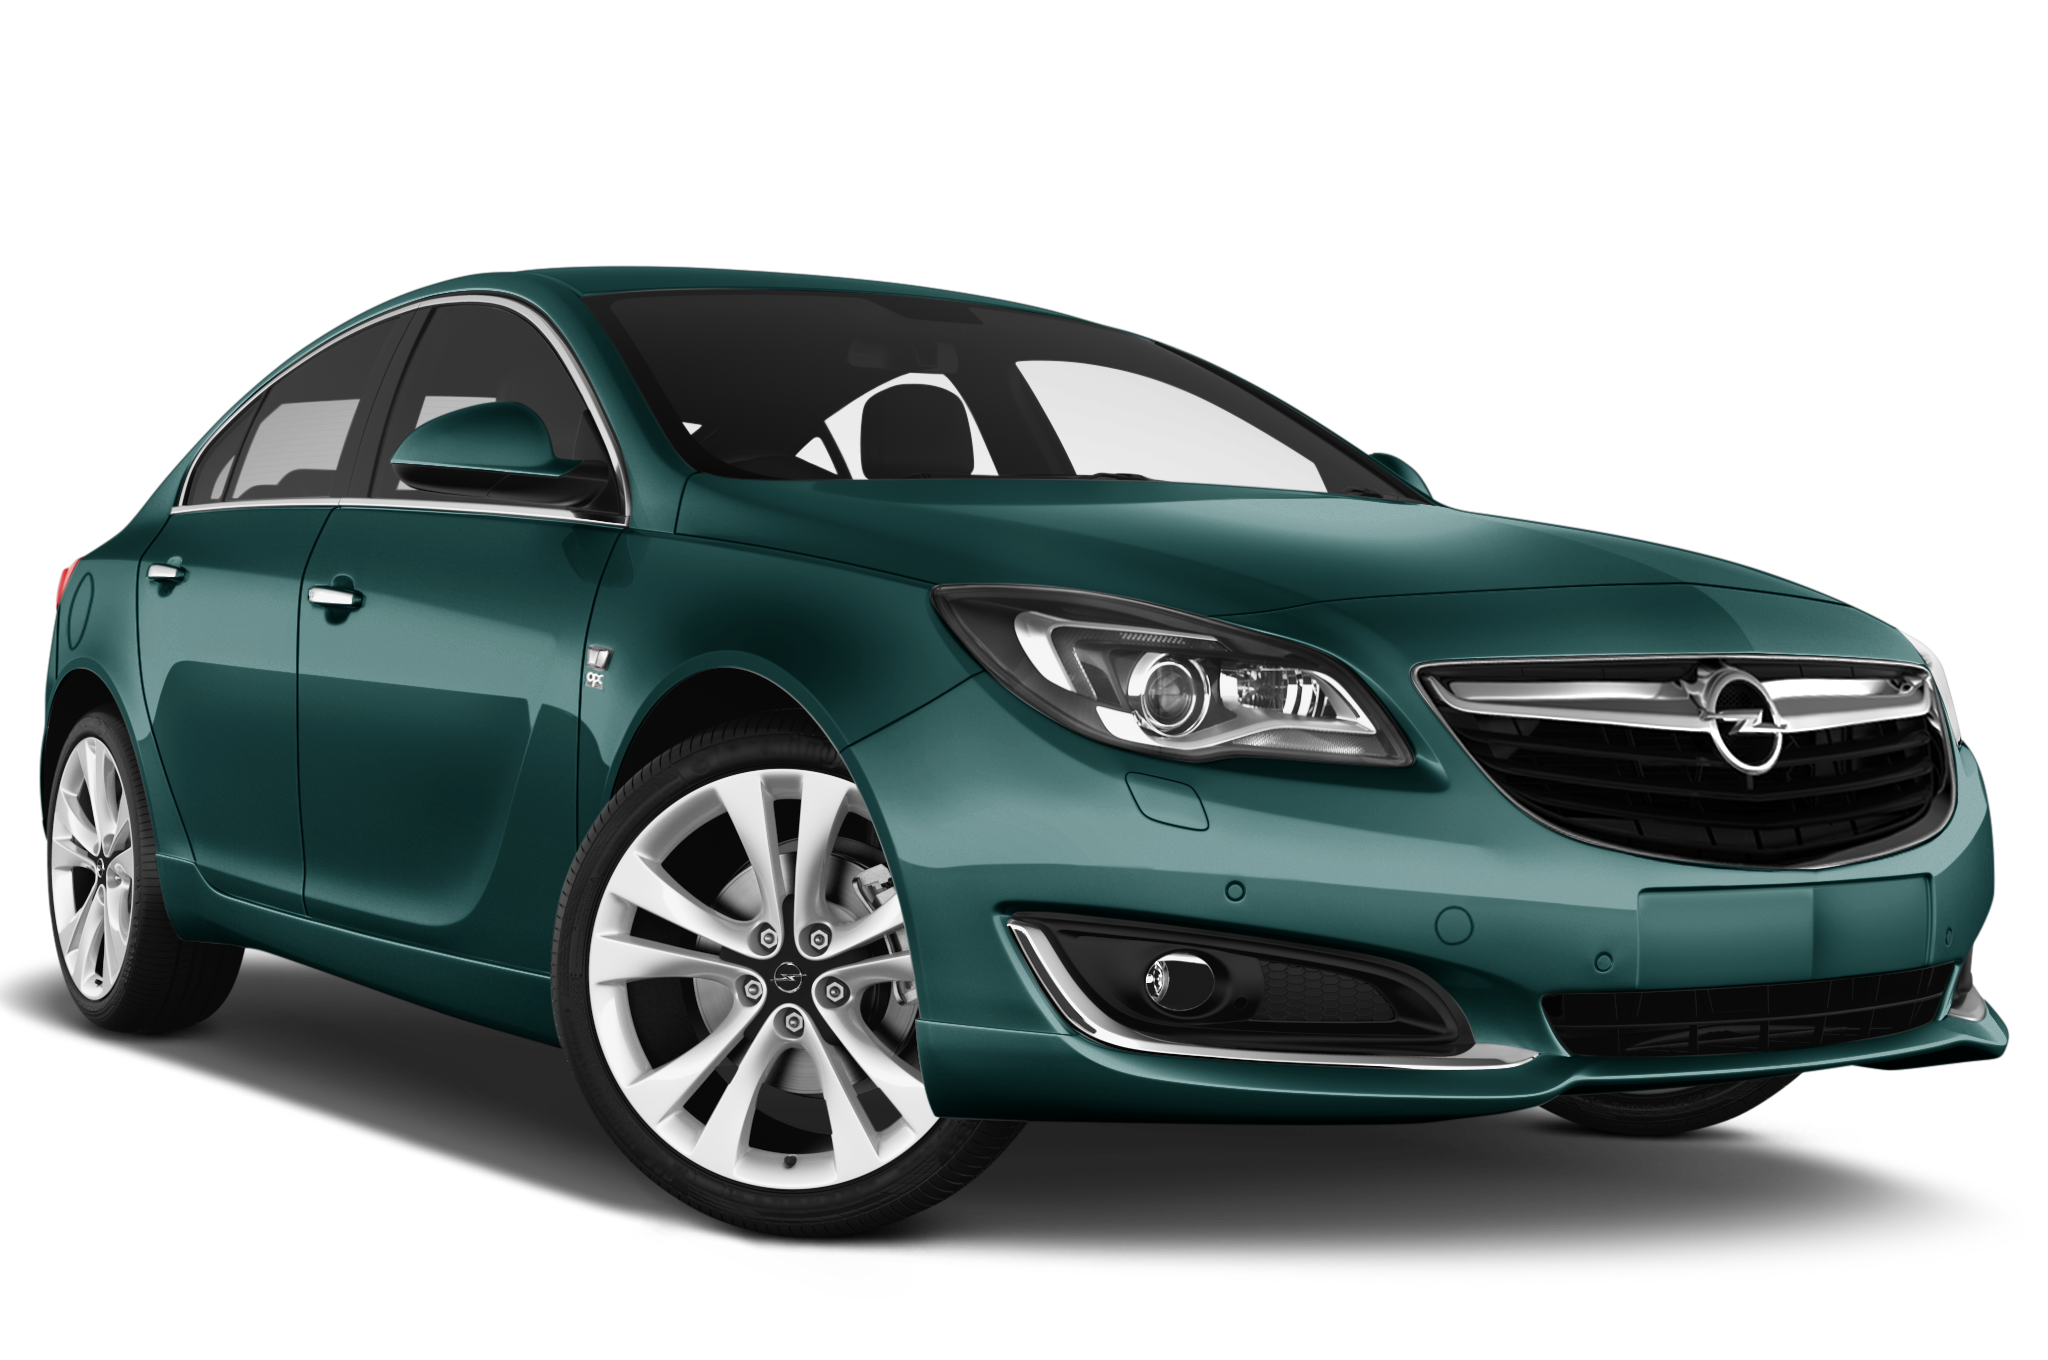 Vauxhall Insignia Car Leasing Options